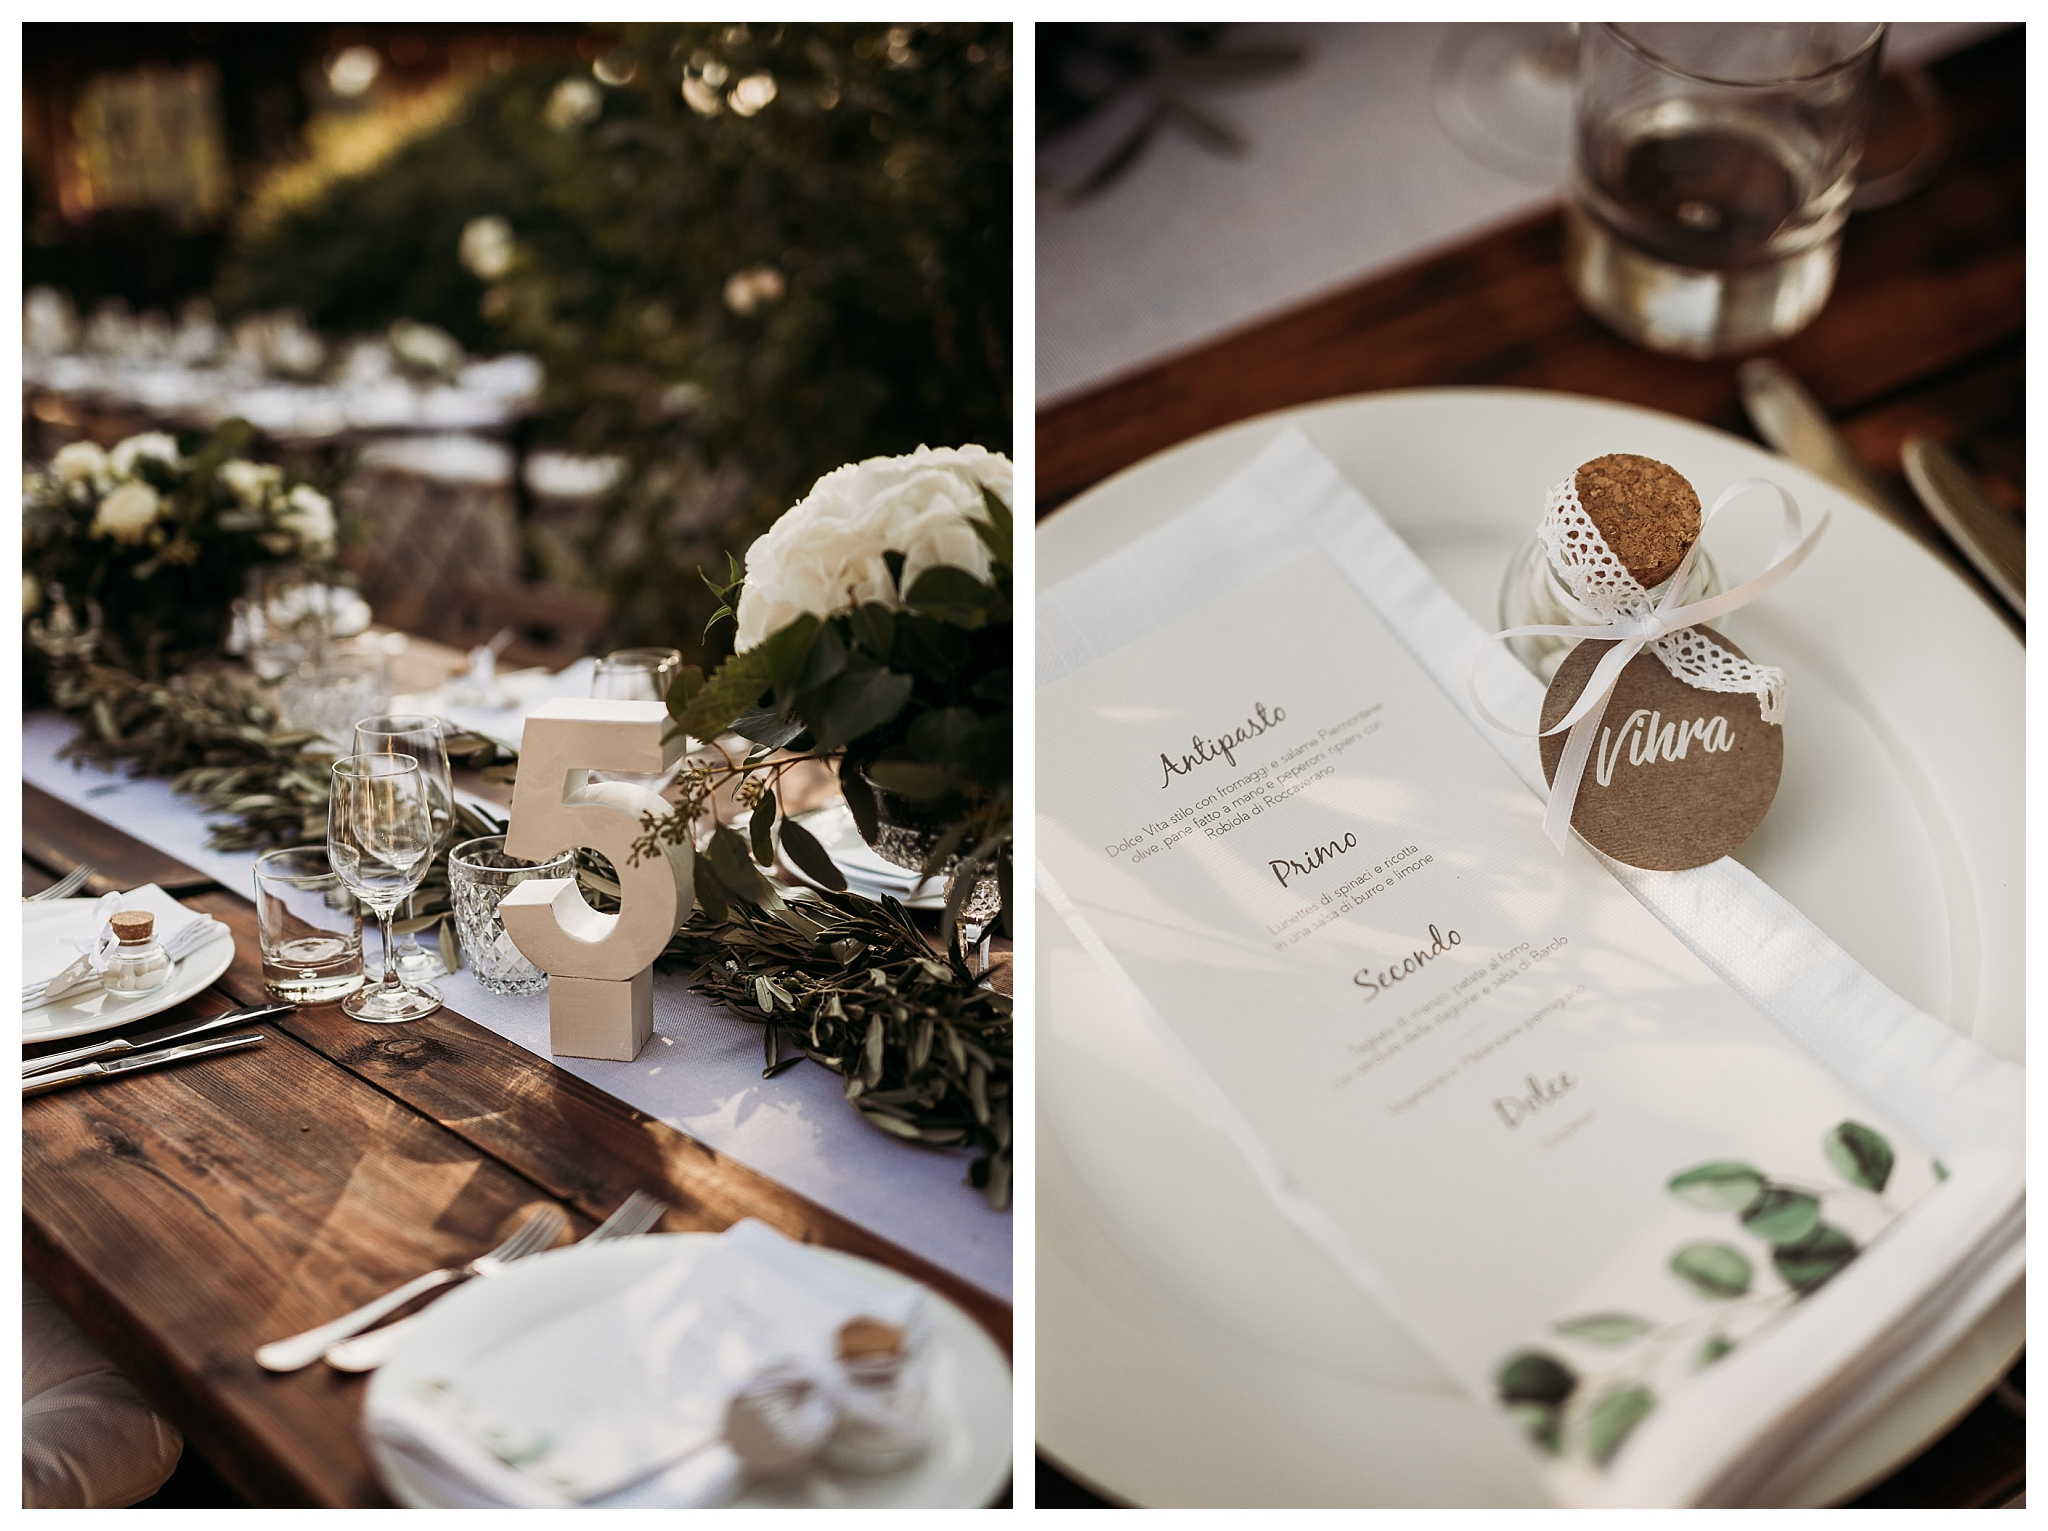 decorated table setting and wedding stationery with green detailes and unlive leaves at La Villa Hotel, Mombaruzzo